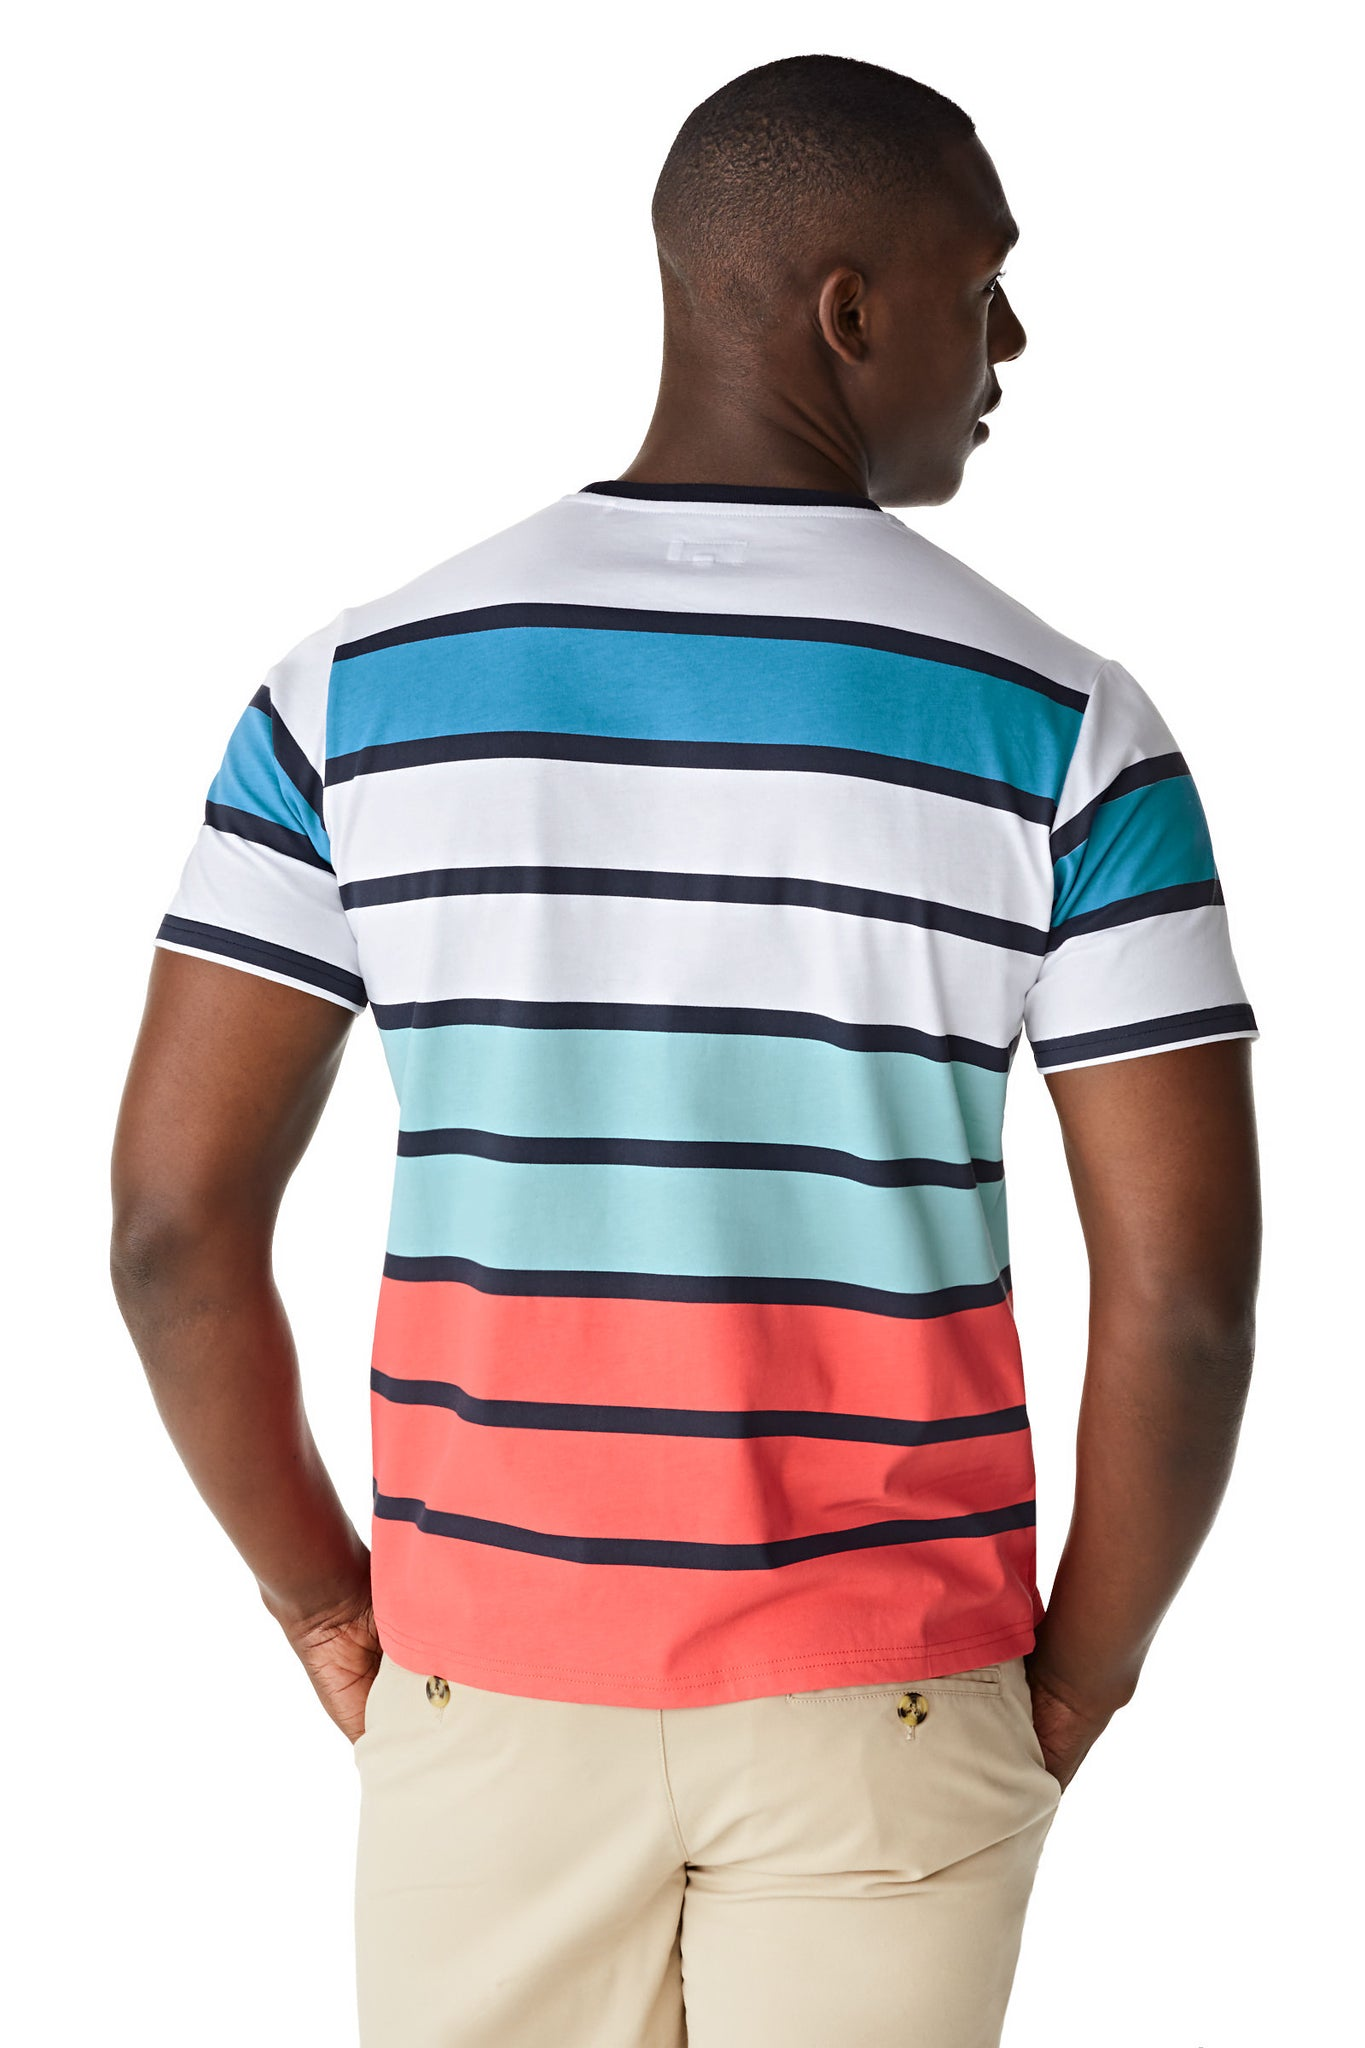 McG Regular fit T-shirt with color-block stripes